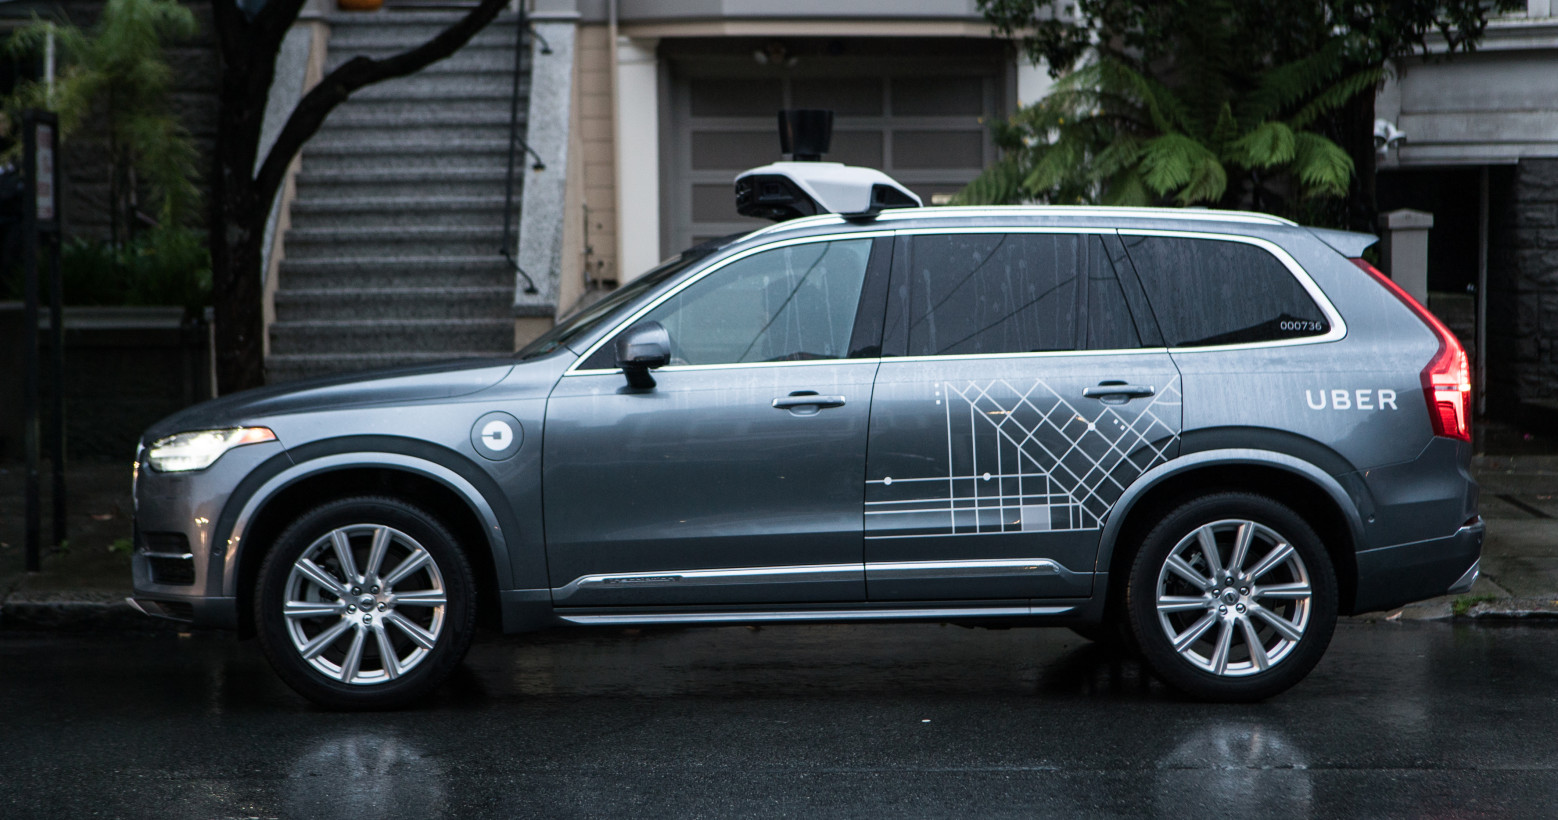 Uber's self-driving car may not have been at fault for killing a pedestrian